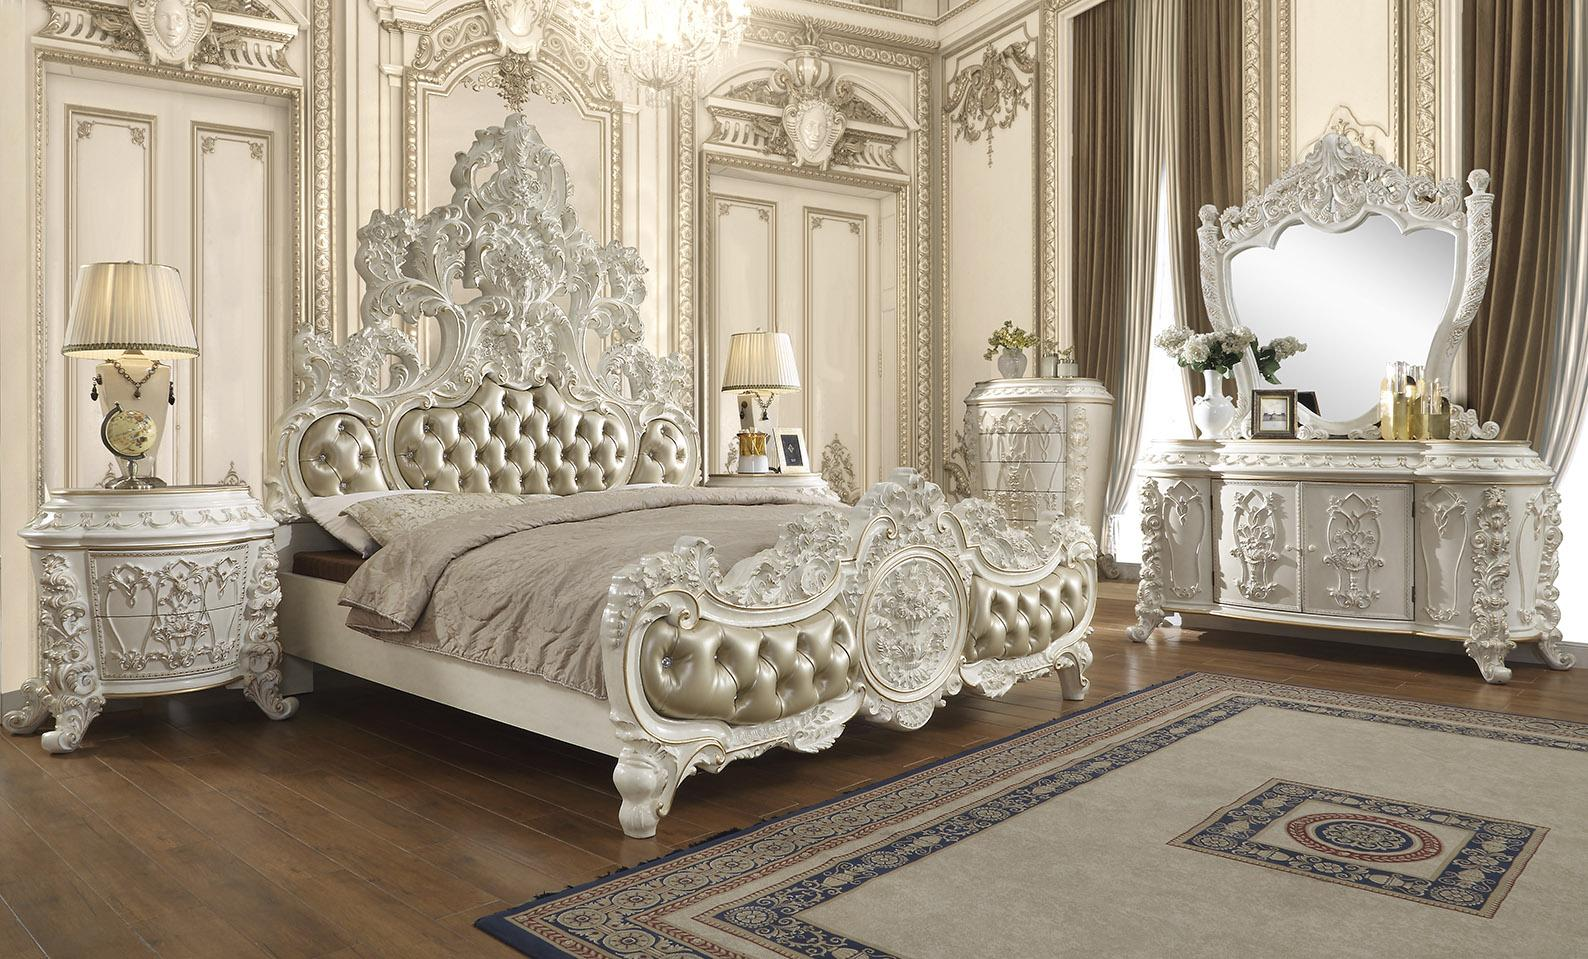 Traditional Gold, White Faux Leather and Wood, Solid Hardwood Sleigh California King Bedroom Set 5 pcs HD-1806 by Homey Design